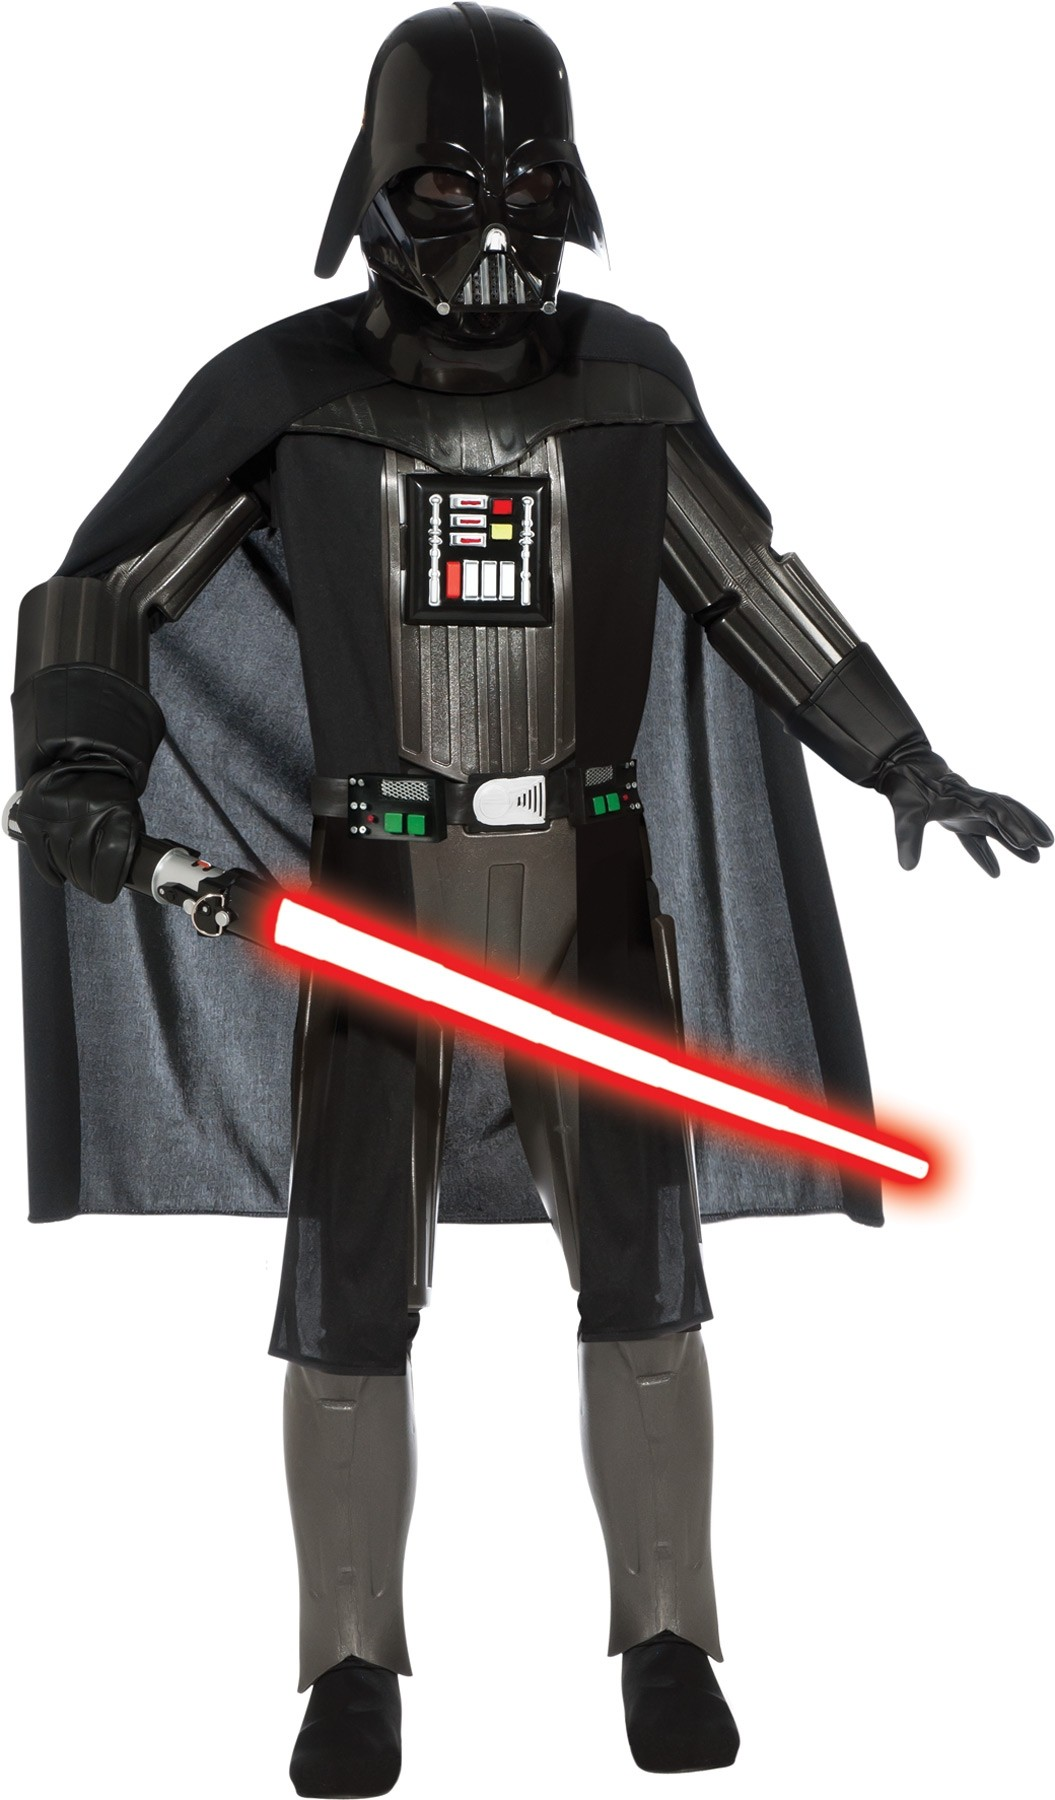 NEW Rubies Costume Star Wars Darth Vader Deluxe Adult Black X Large Costume